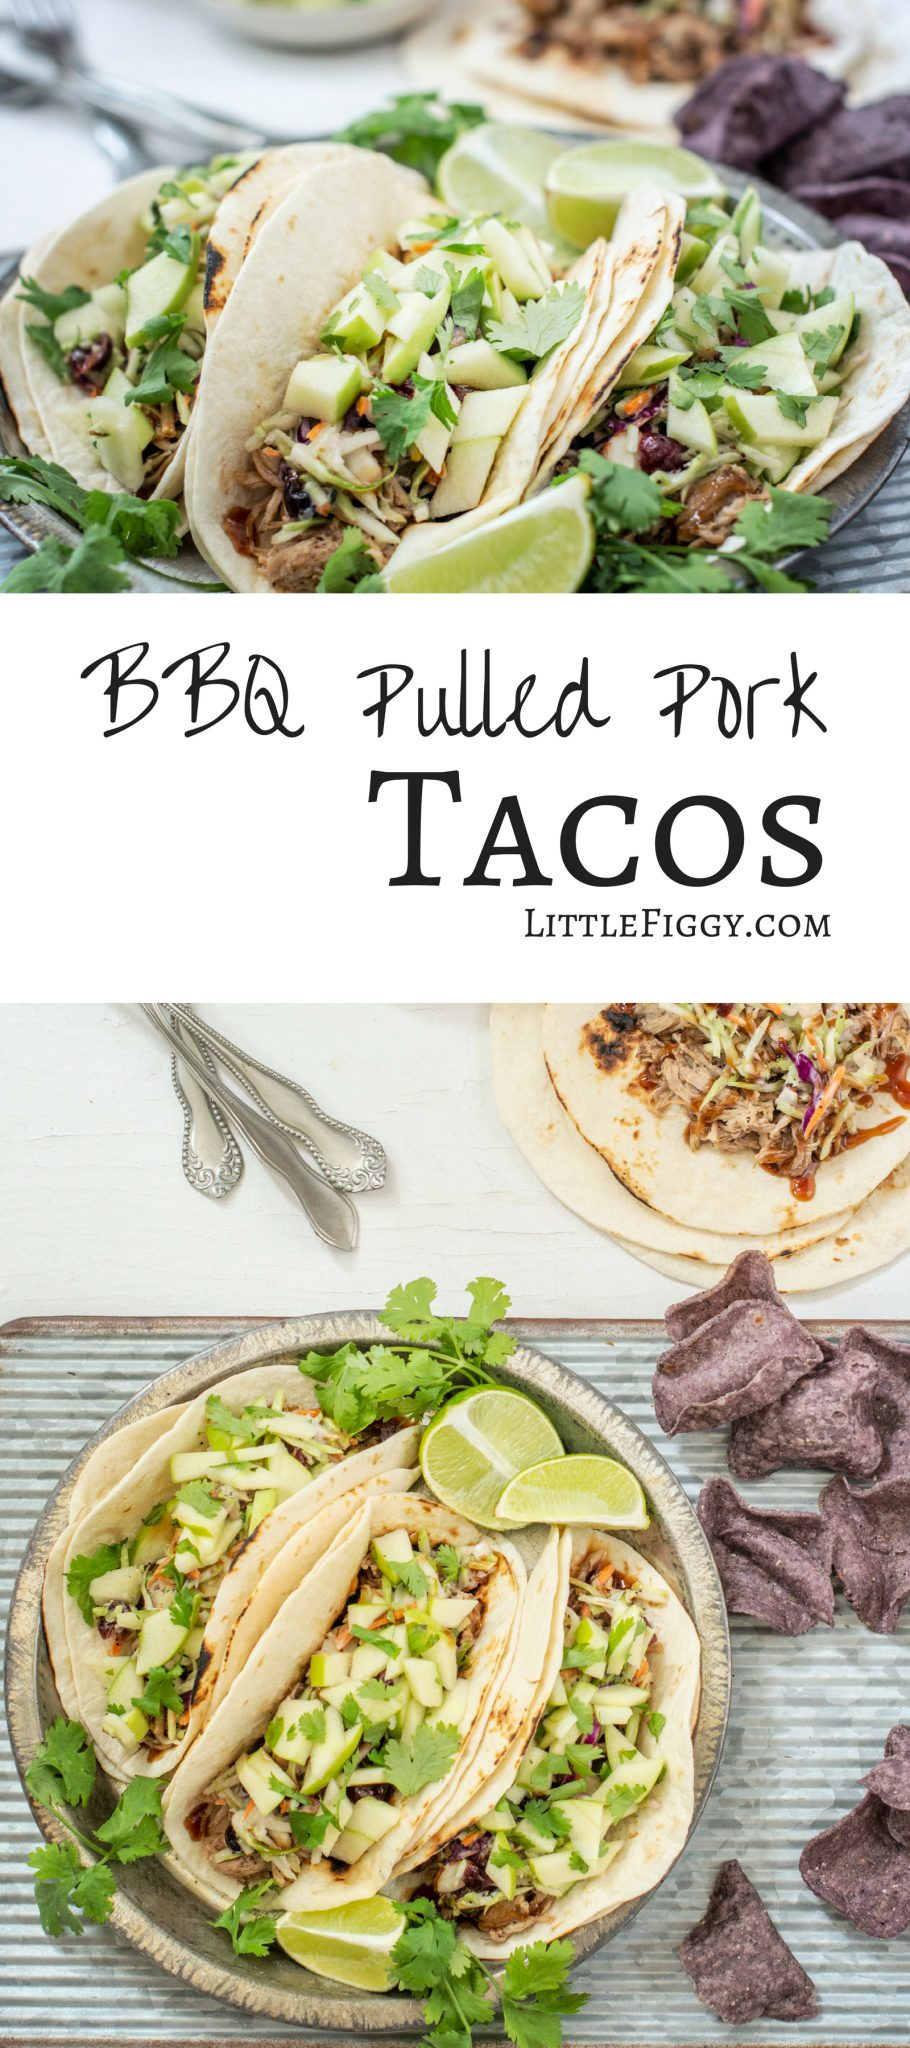 Love this zesty #BBQ Pulled Pork Taco #recipe made with #BudweiserBBQSauce then topped off with a crunchy broccoli slaw & gorgeous apple salsa! Get the recipe at Little Figgy Food! @Budweiser #ad #BudweiserSauce #KingOfSauces #Carnitas